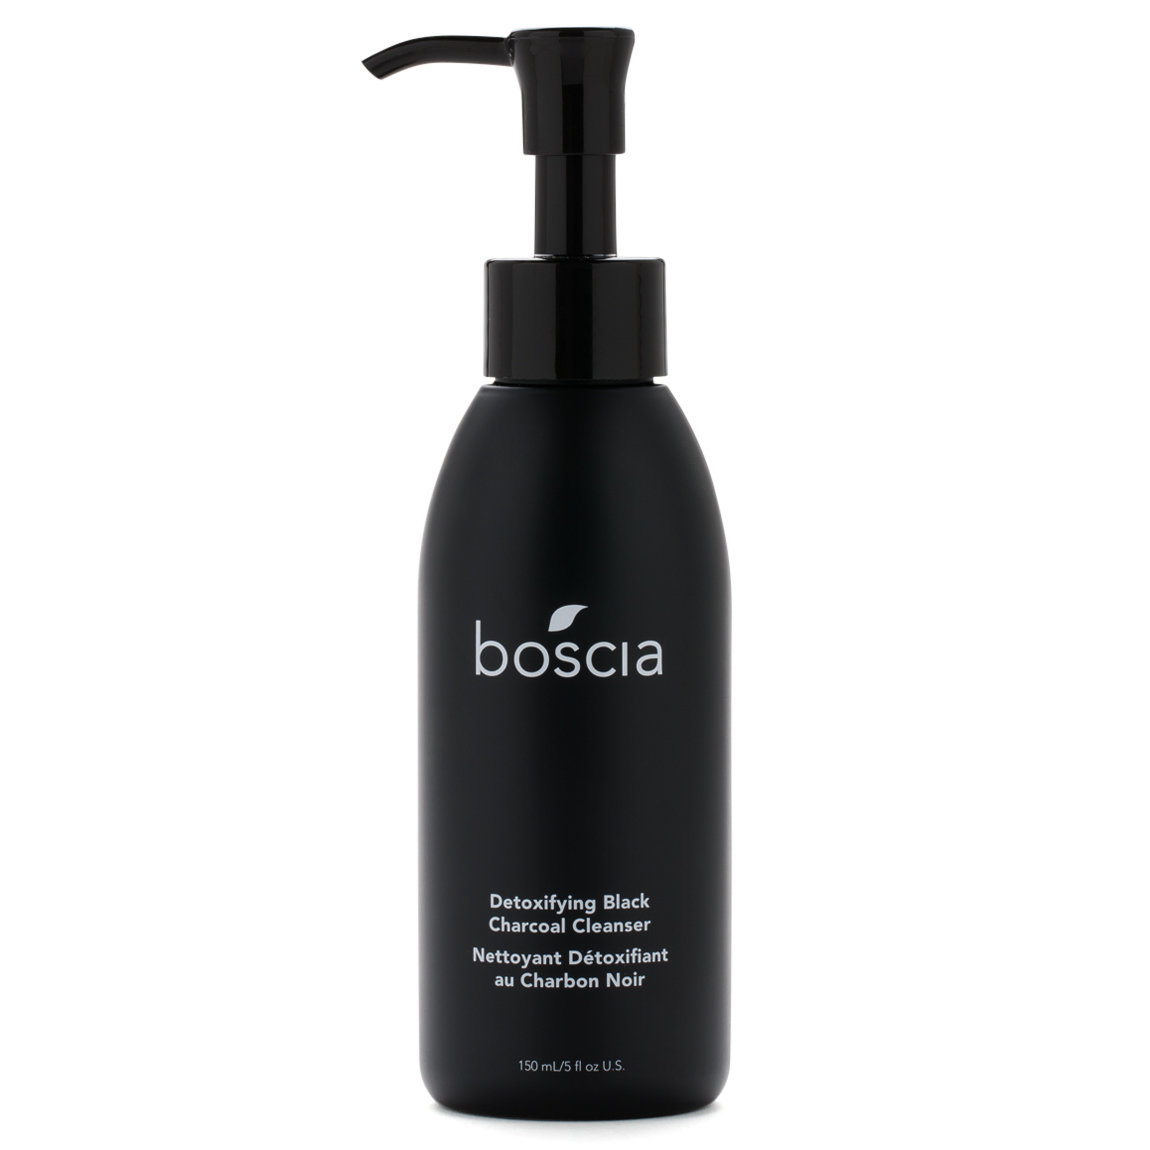 boscia Detoxifying Black Charcoal Cleanser 150 ml product swatch.